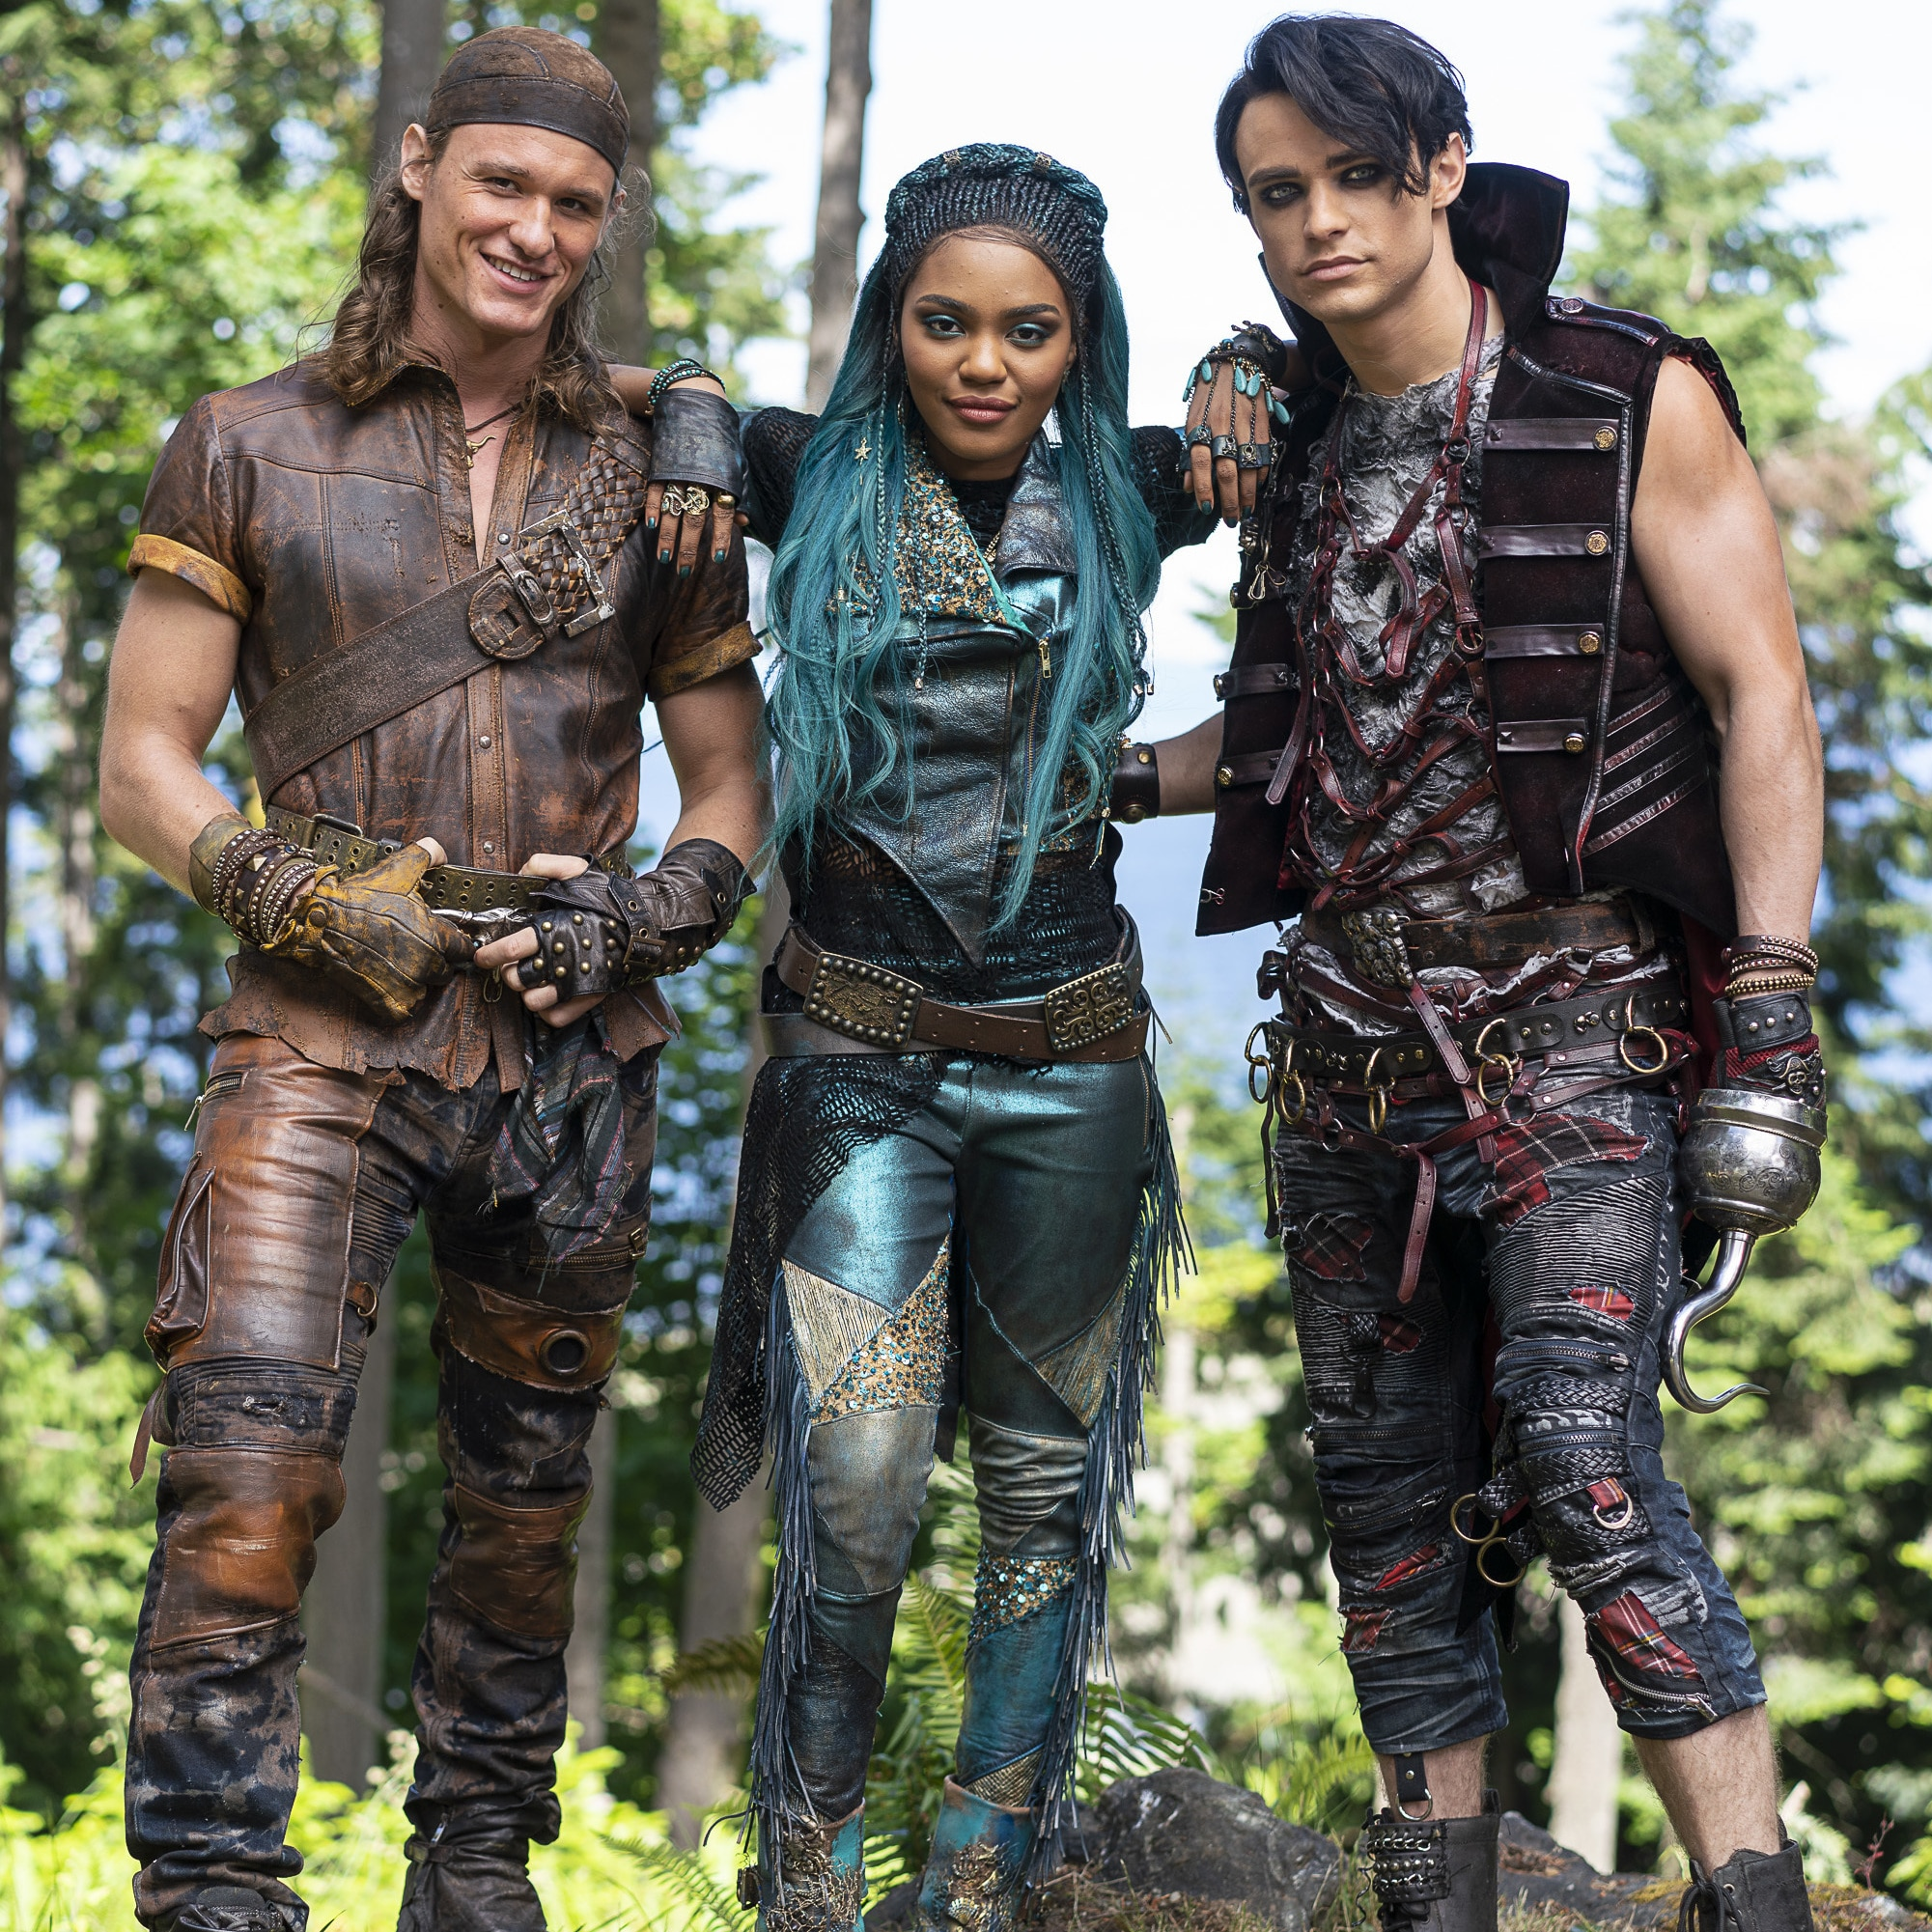 See the Descendants 3 Cast Rocking Their New VK Looks From the Set